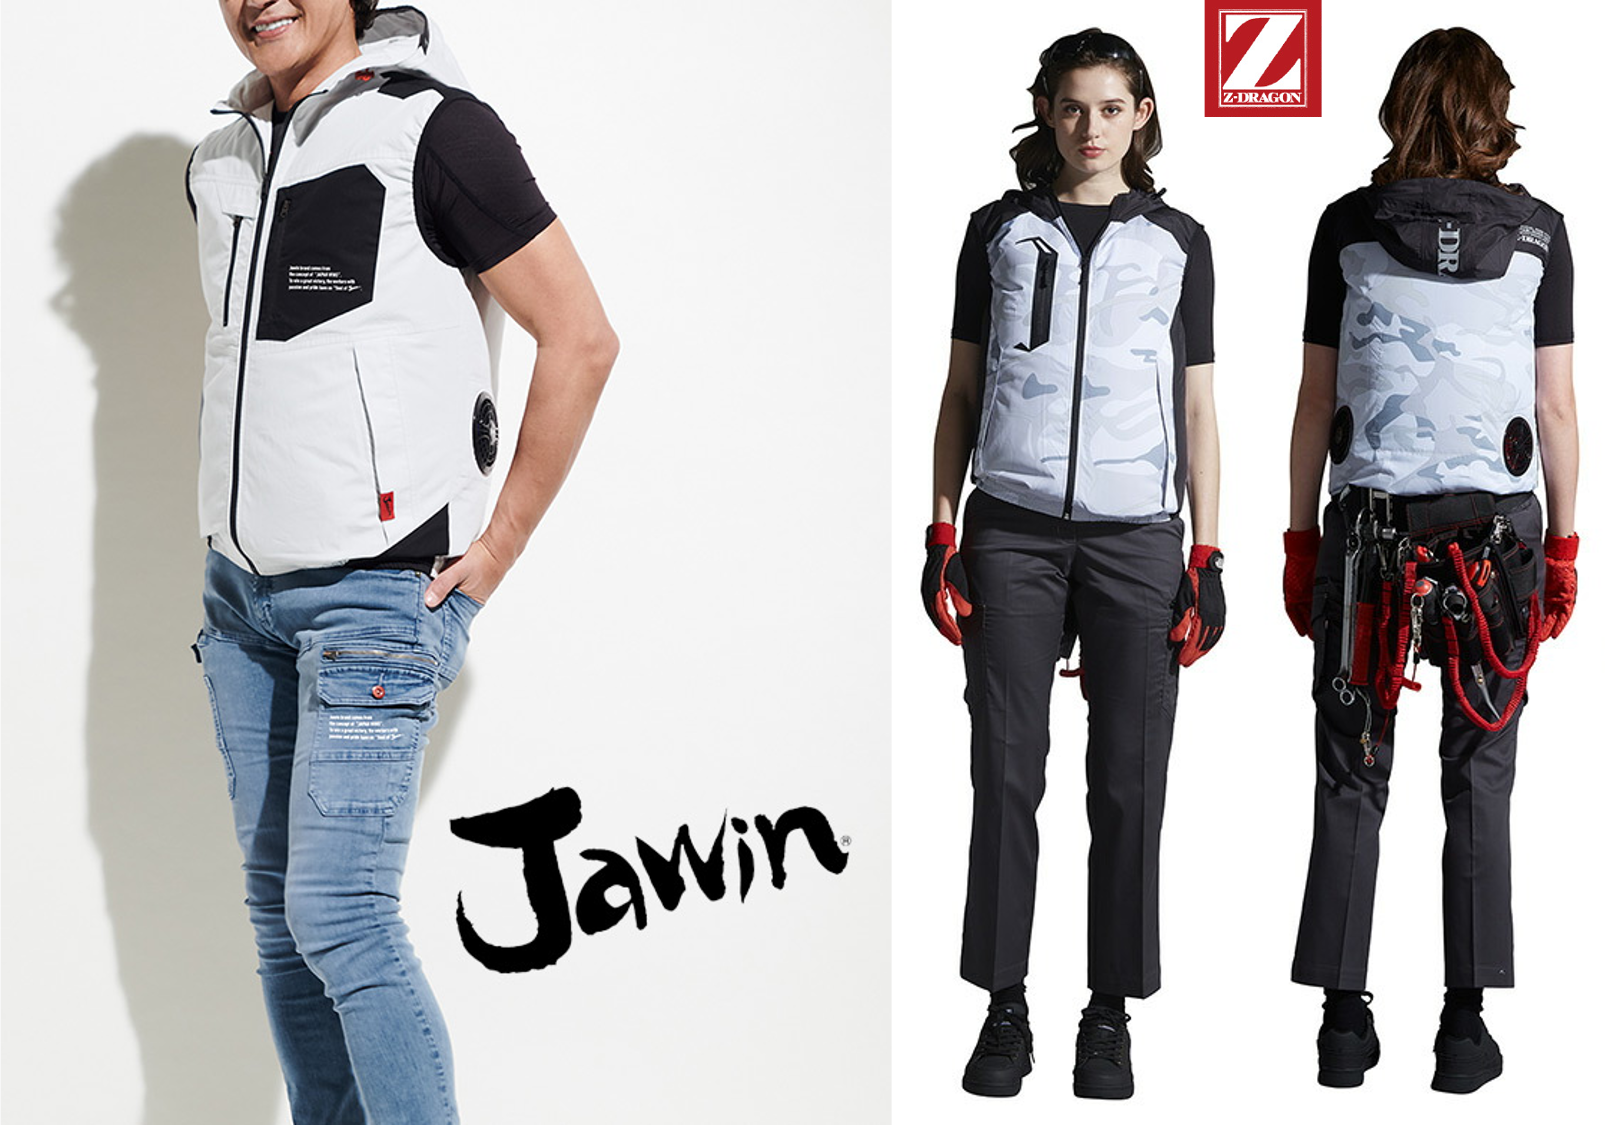 You are currently viewing Jawin(ジャウィン)とZ-DRAGON(ジィードラゴン)の最新空調服 – 2021年春夏新作!パワーファン対応スターターキットSET